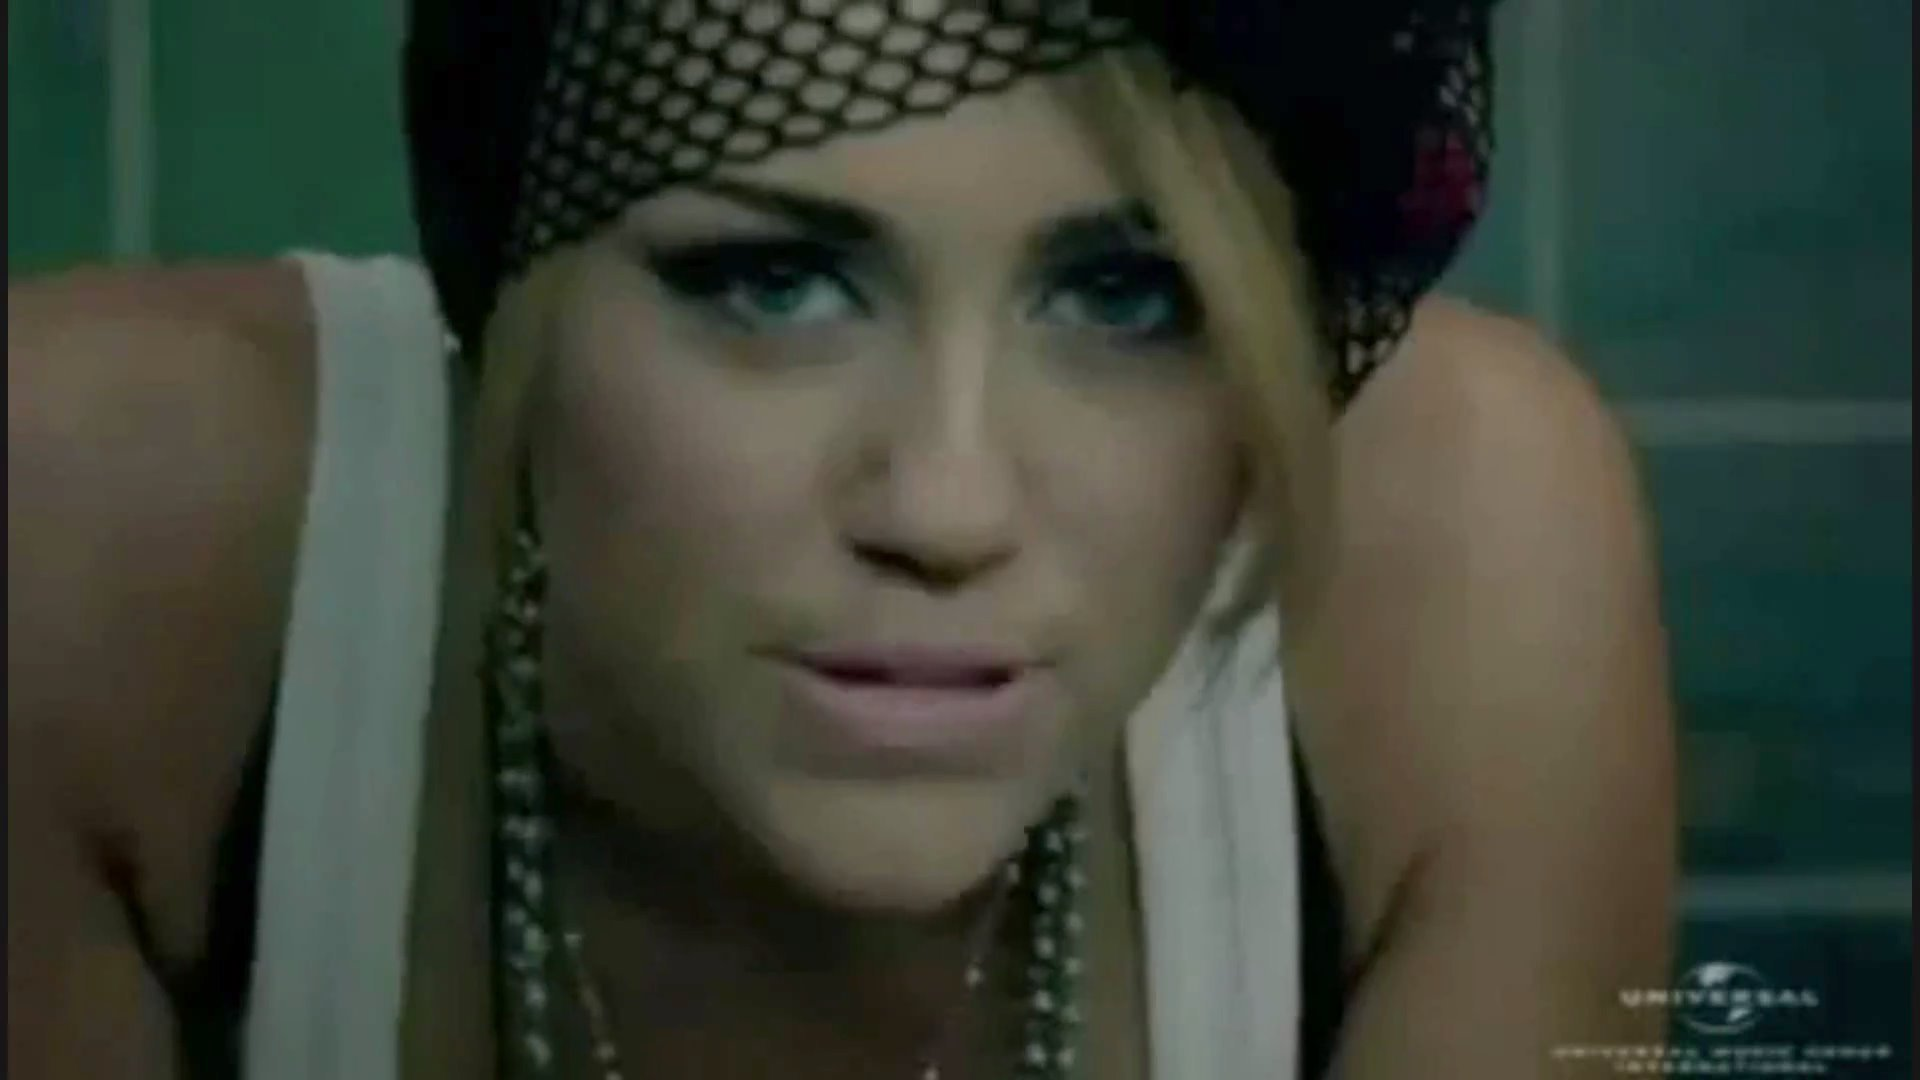 miley cyrus songs - DriverLayer Search Engine